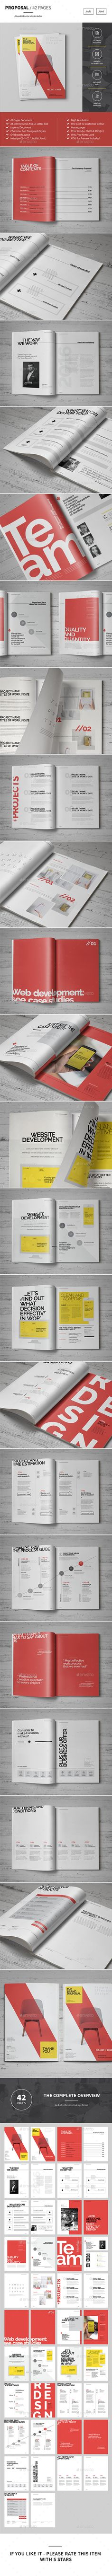 40 Pages Full Proposal Package A4